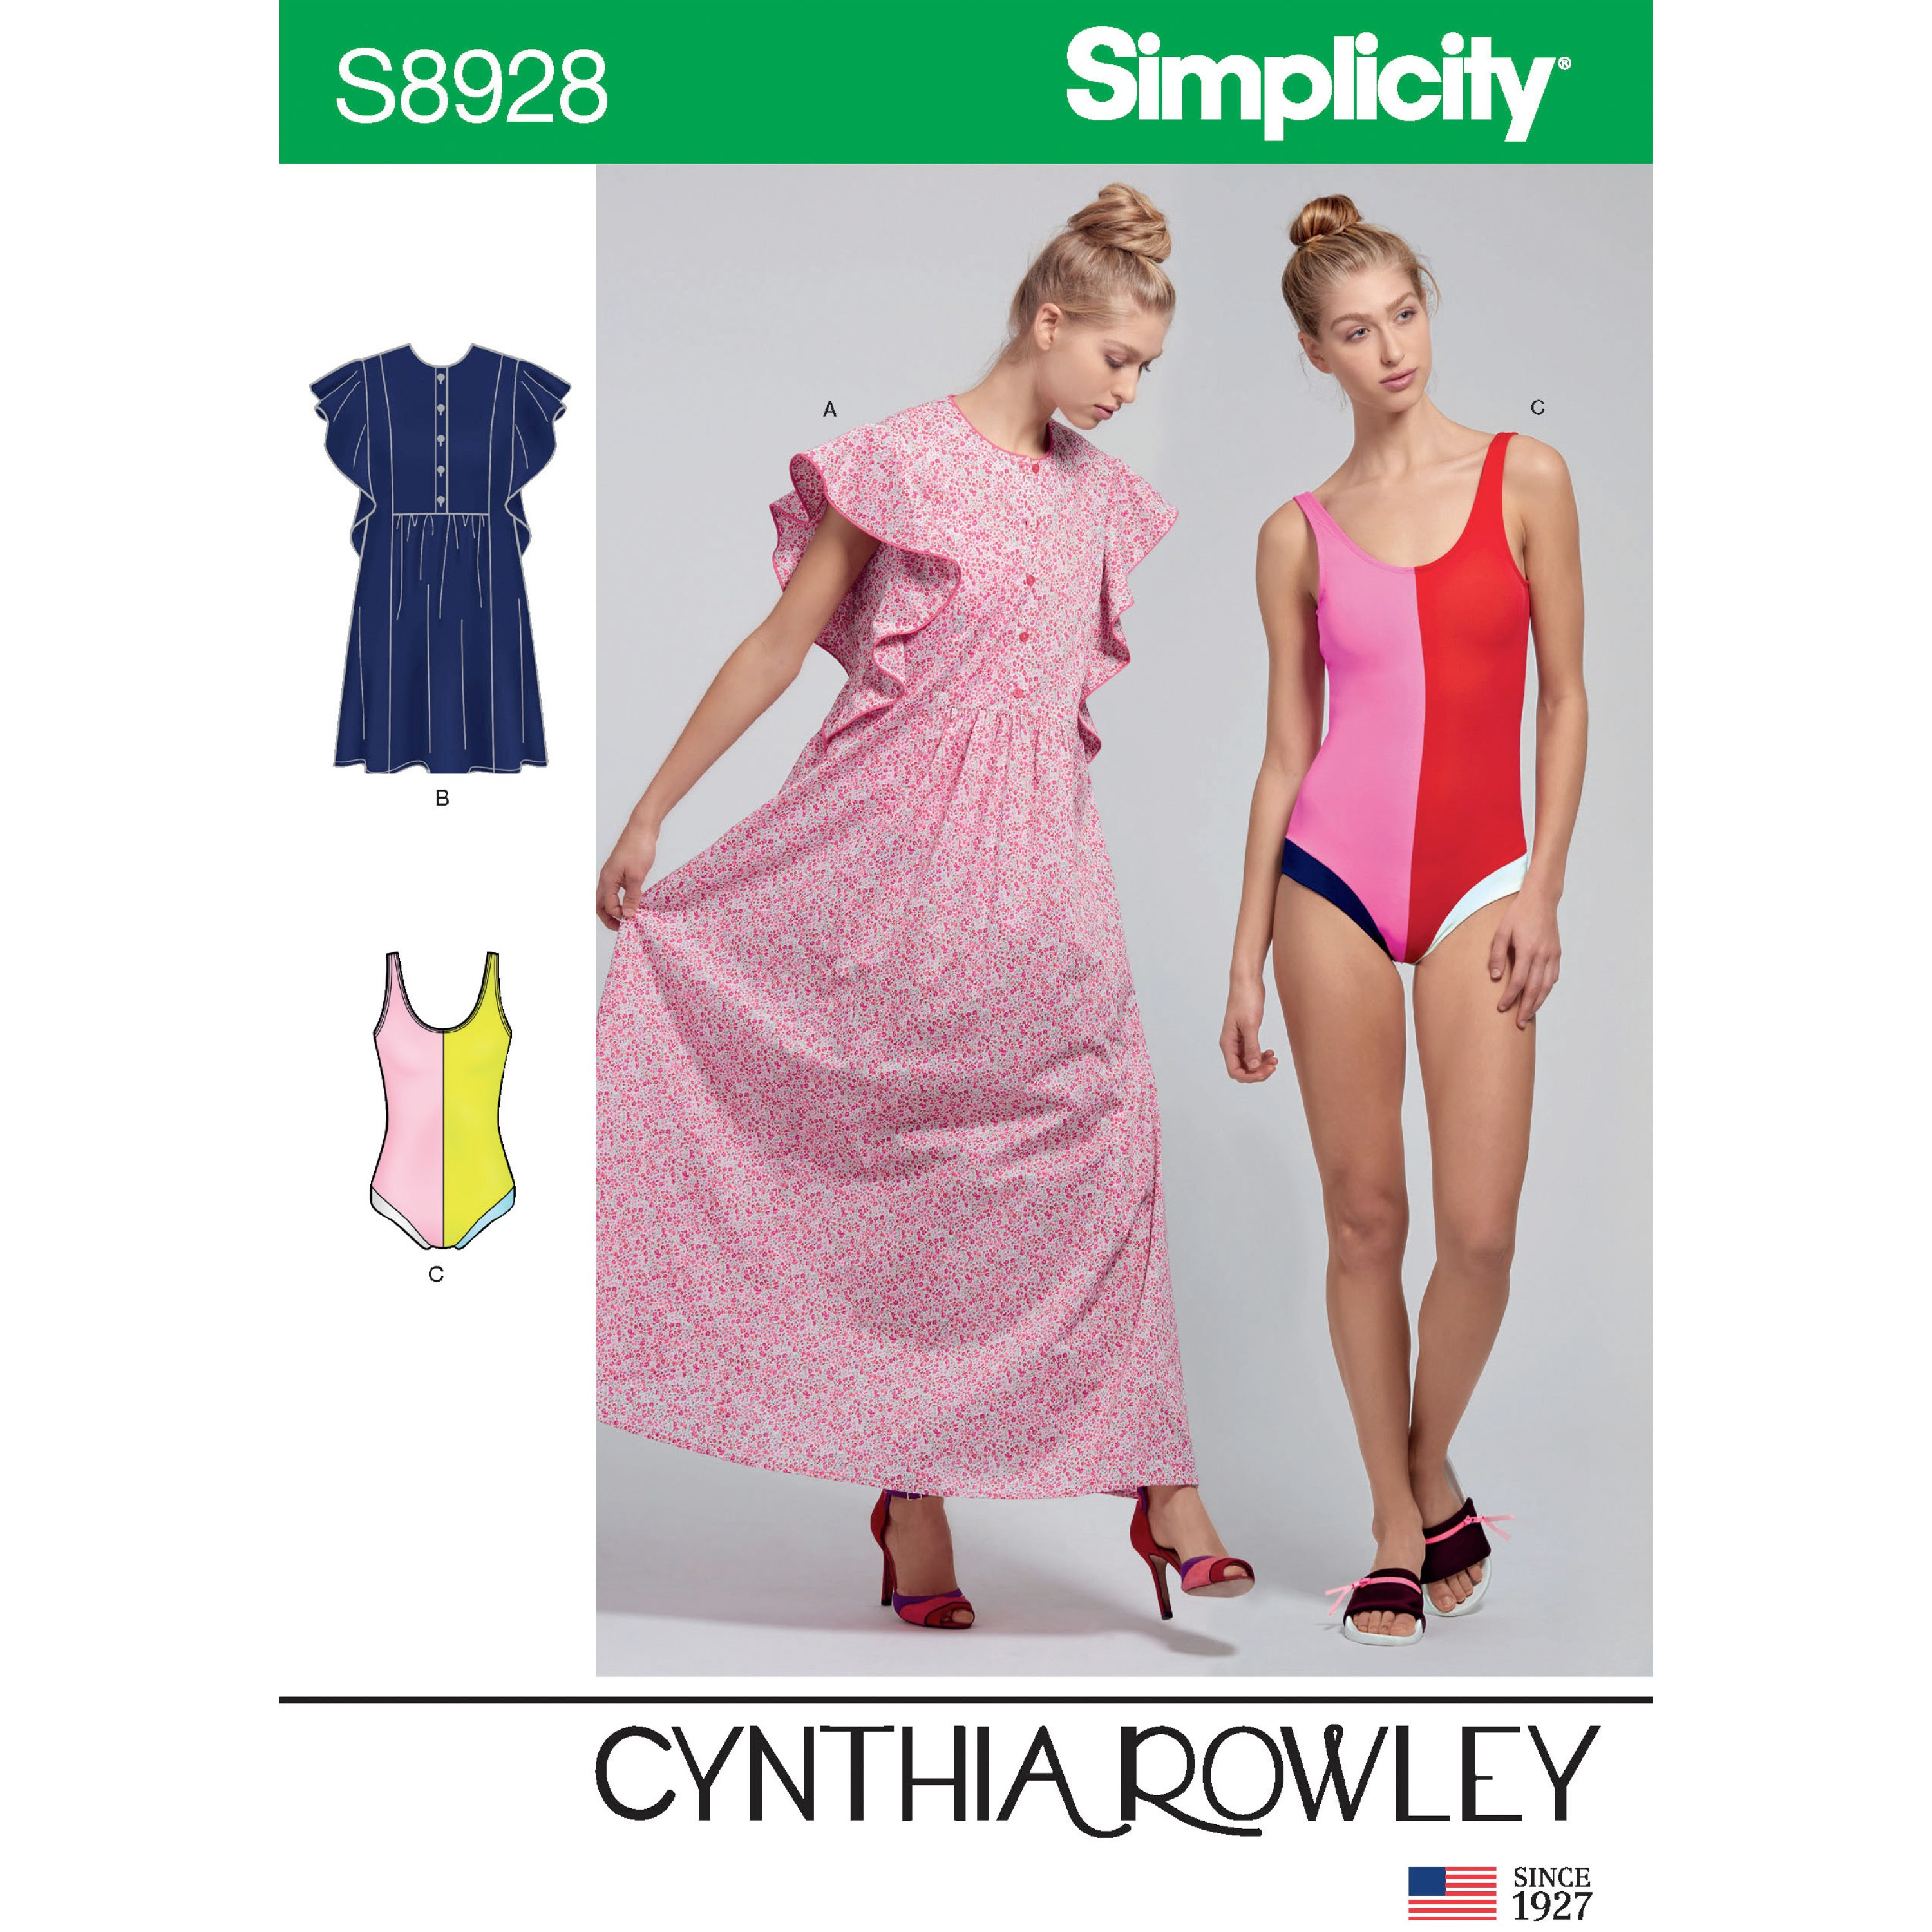 Simplicity Sewing Pattern 8928 Misses' Swimsuit & Caftans by Cynthia Rowley